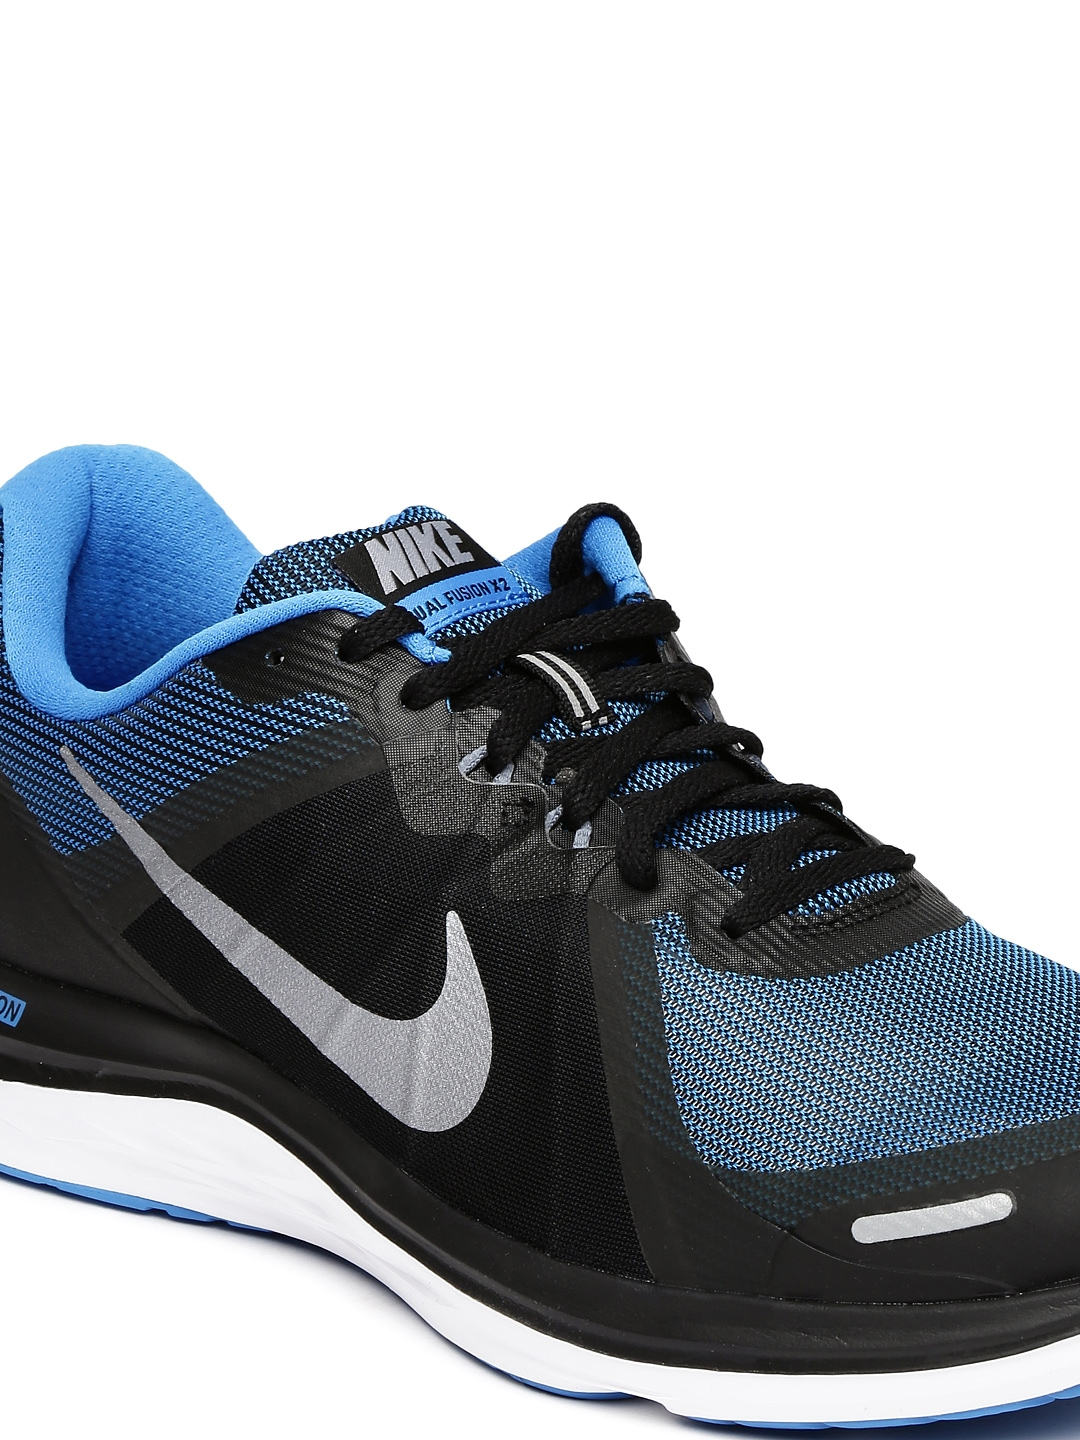 77508991893d6 Nike Blue Dual Fusion Shoes For Men | VCFA